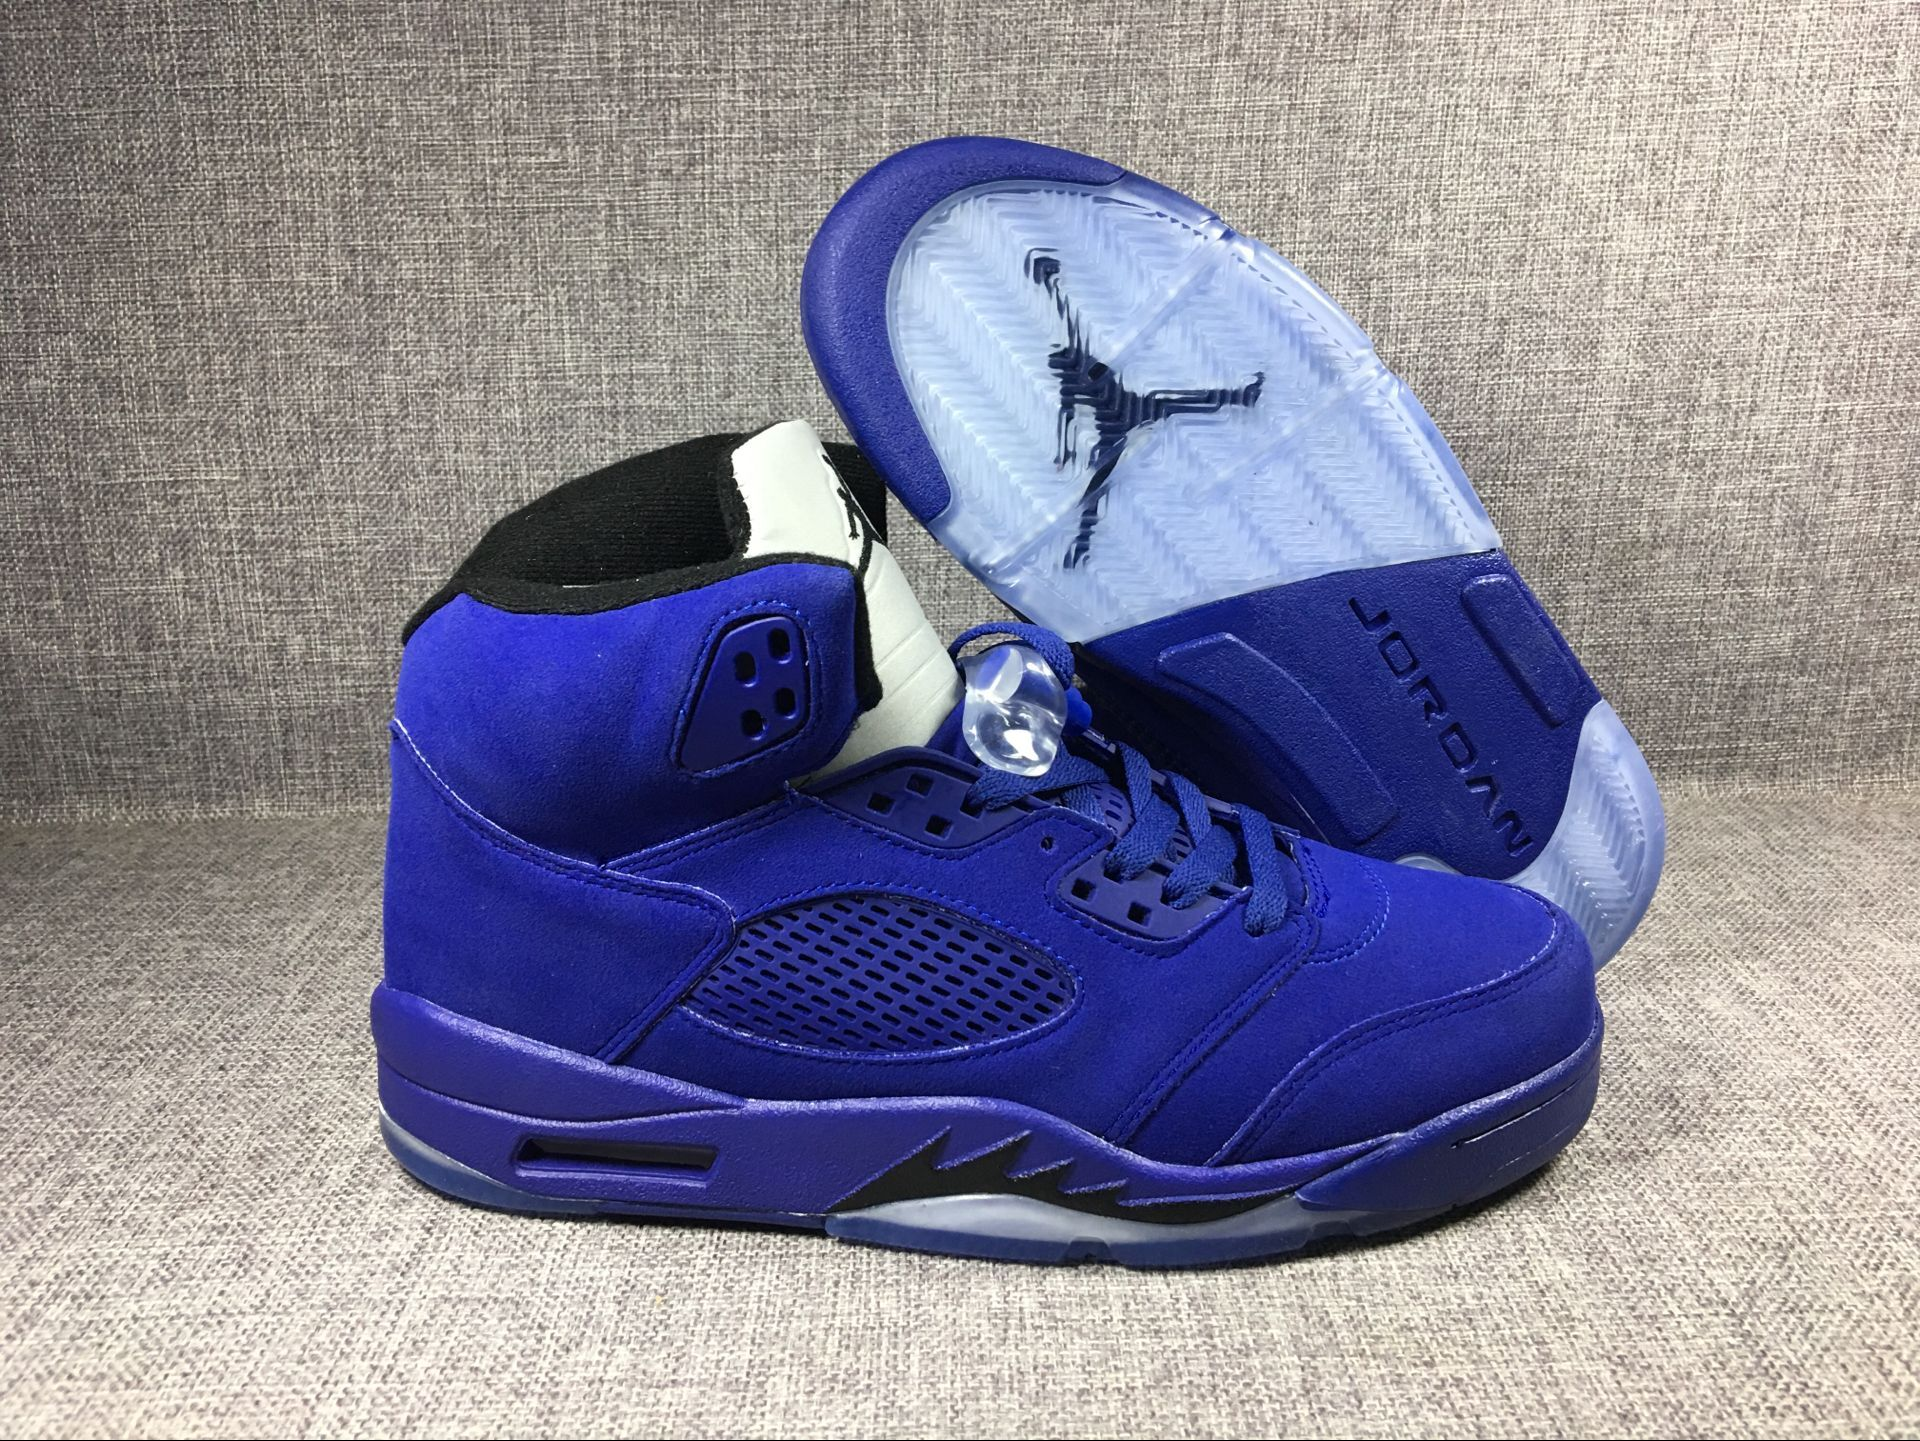 "Men's 2017 Air Jordan 5 Blue Suede ""Flight Suit"" Game Royal/Black Shoes"